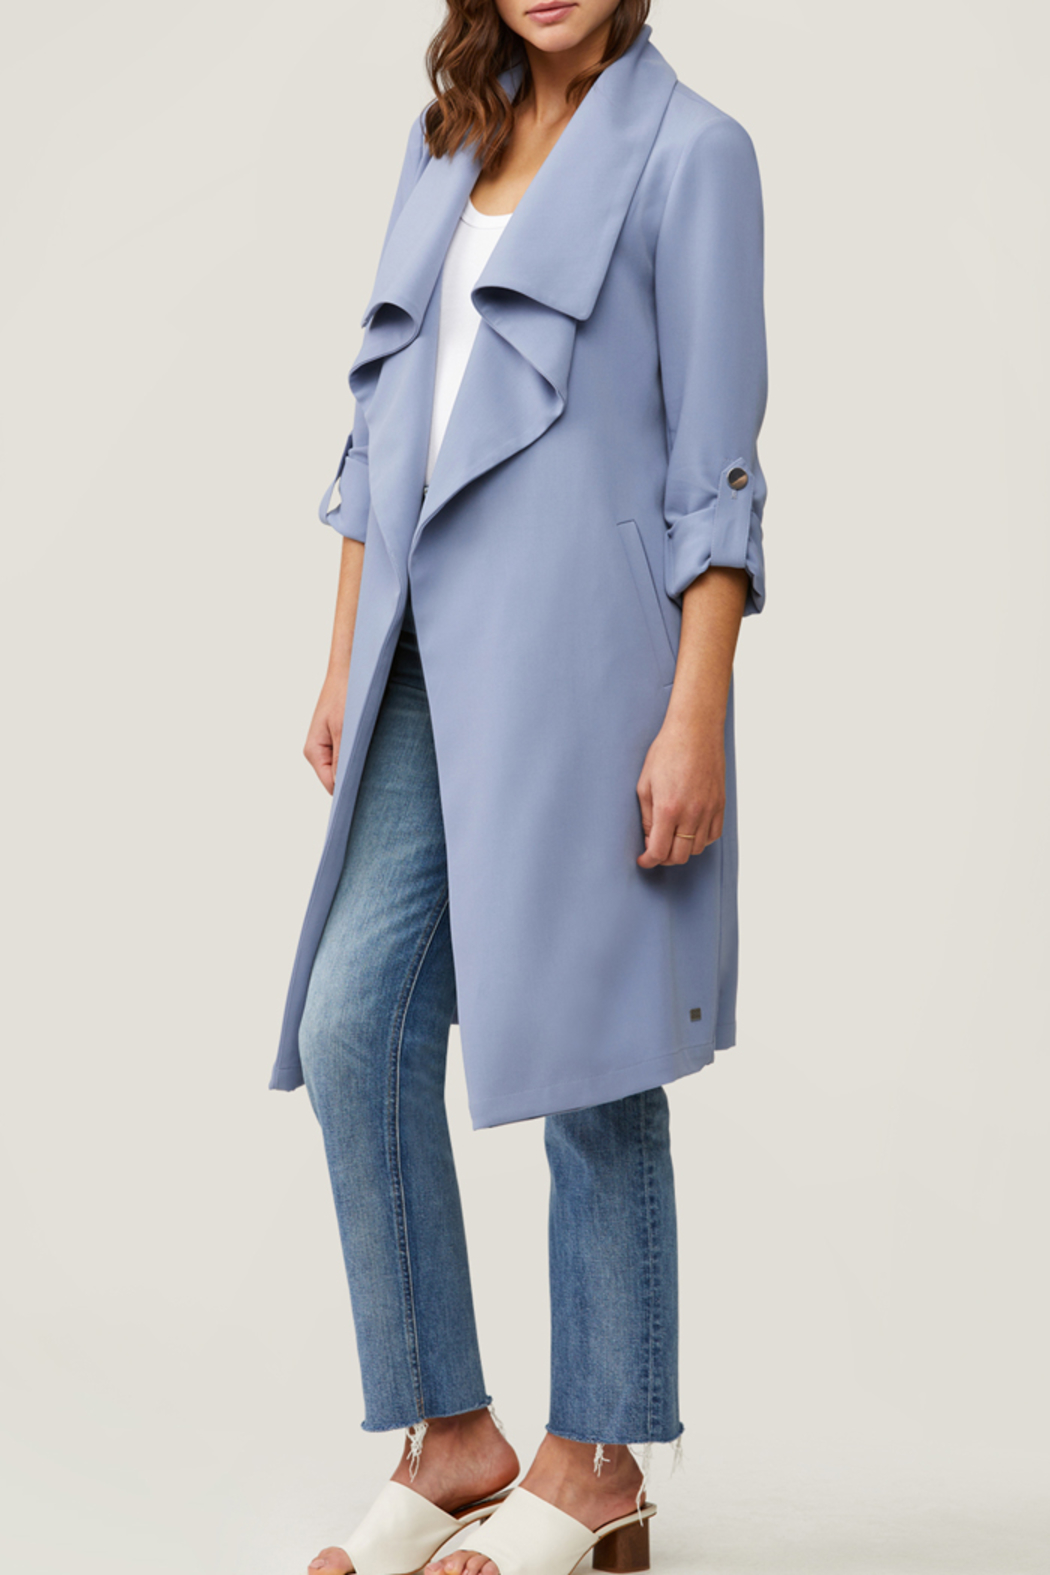 Soia & Kyo SOIA & KYO LIGHTWEIGHT OUTER JACKET - Back Cropped Image